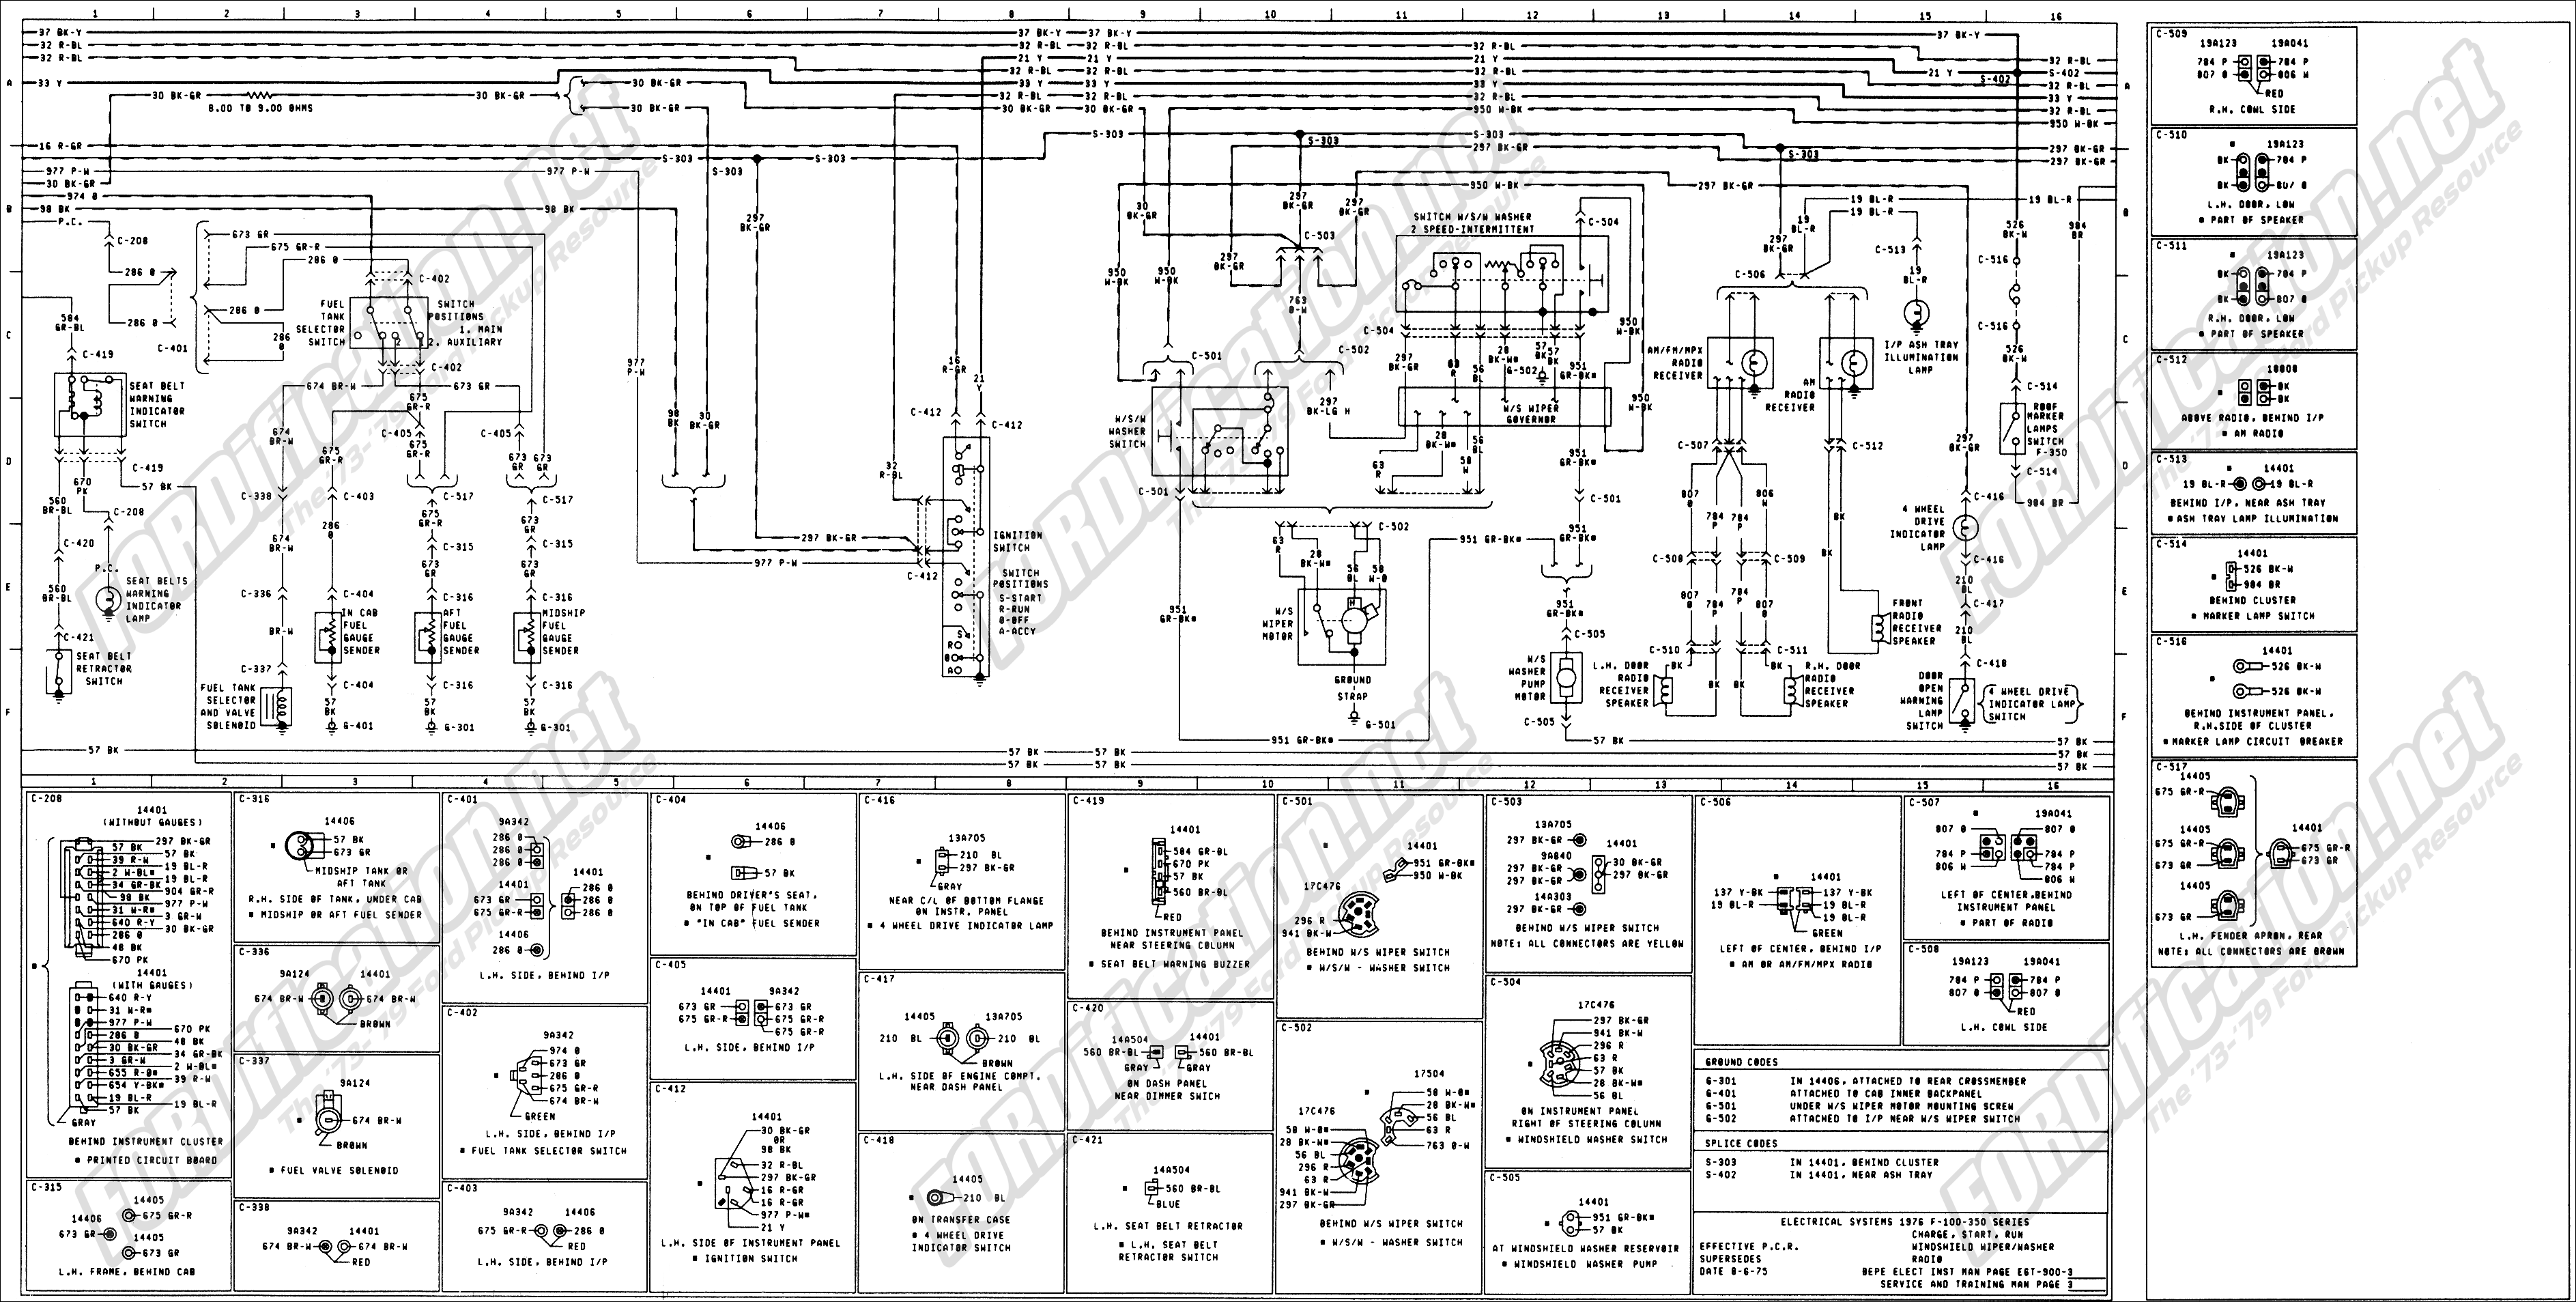 wiring_76master_3of9 1973 1979 ford truck wiring diagrams & schematics fordification net 1986 Ford F-250 Fuel System Wiring Diagram at suagrazia.org